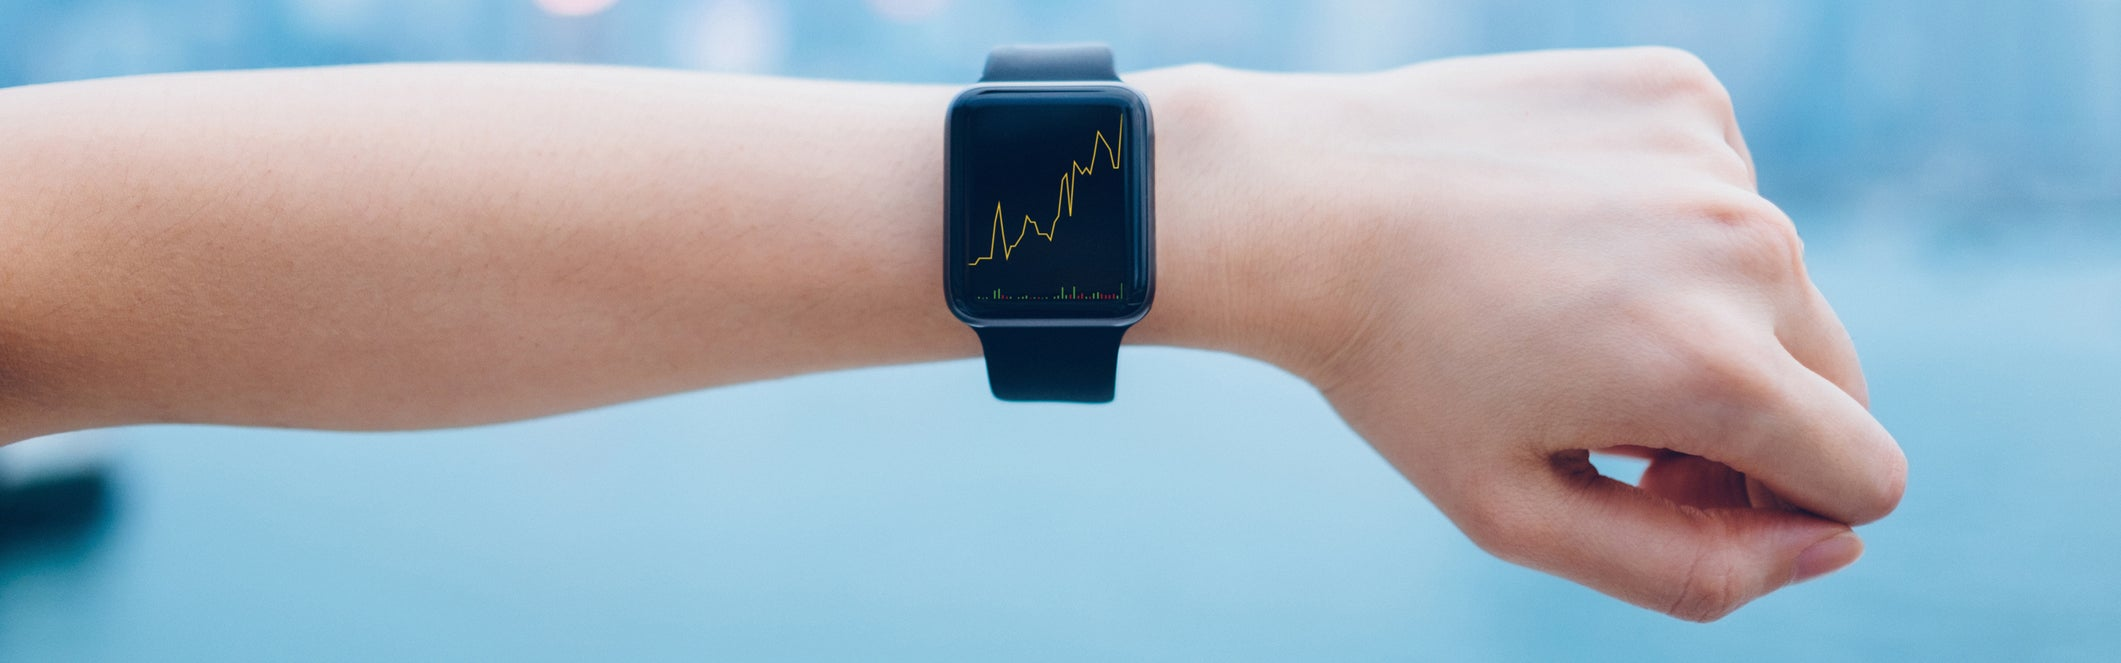 Medication Reminders & More: New Ways That Apple Watch Will Help Keep You Safe image